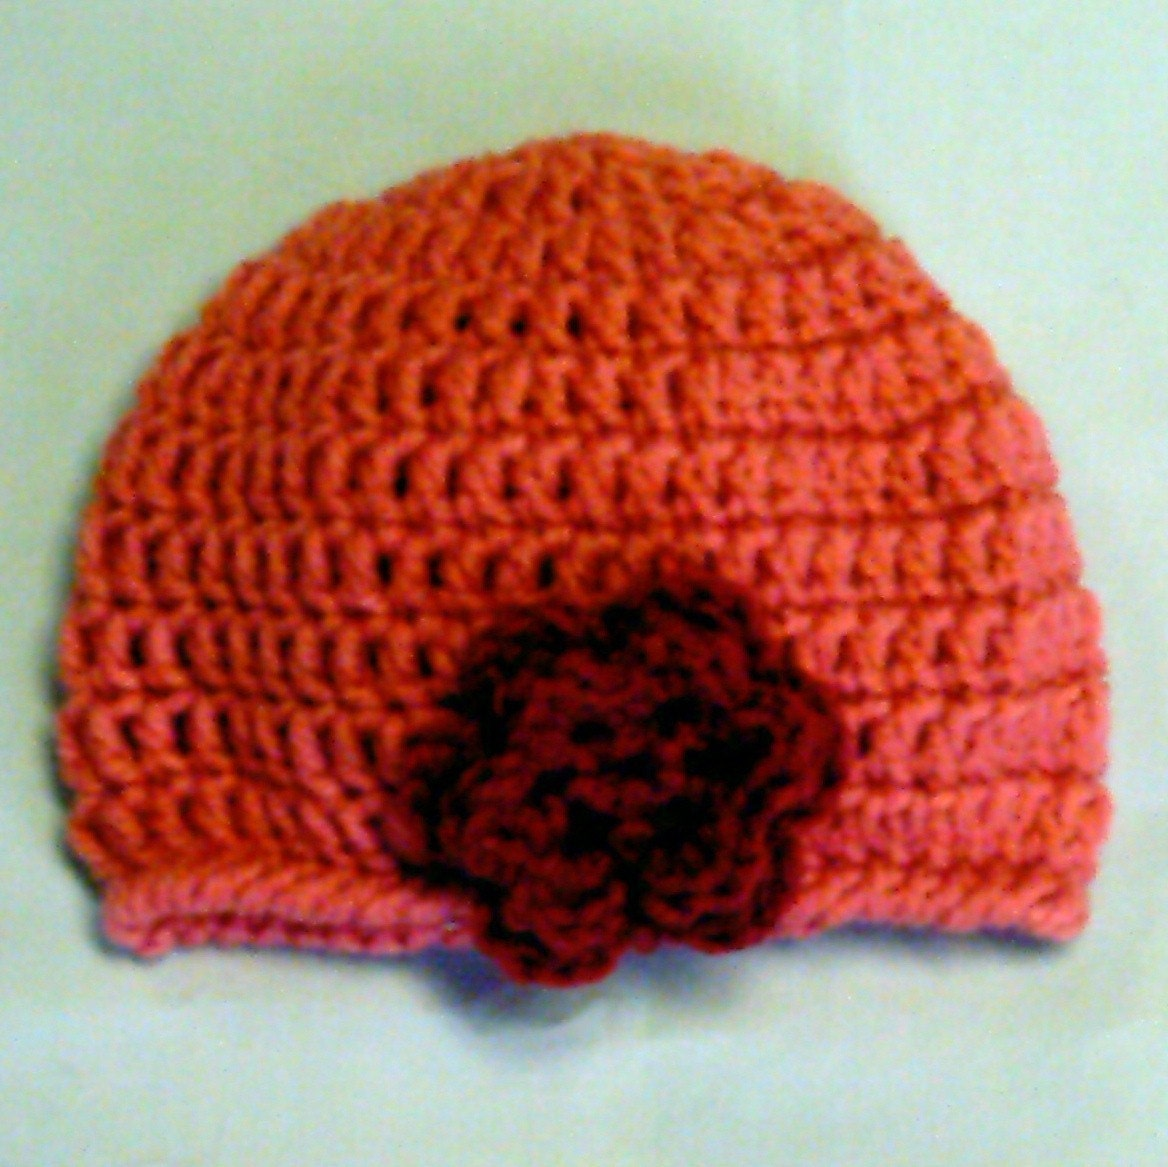 Easy Crochet Flower Hat Pattern : Flower Beanie Easy Crochet Pattern PDF by jillbeth on Etsy